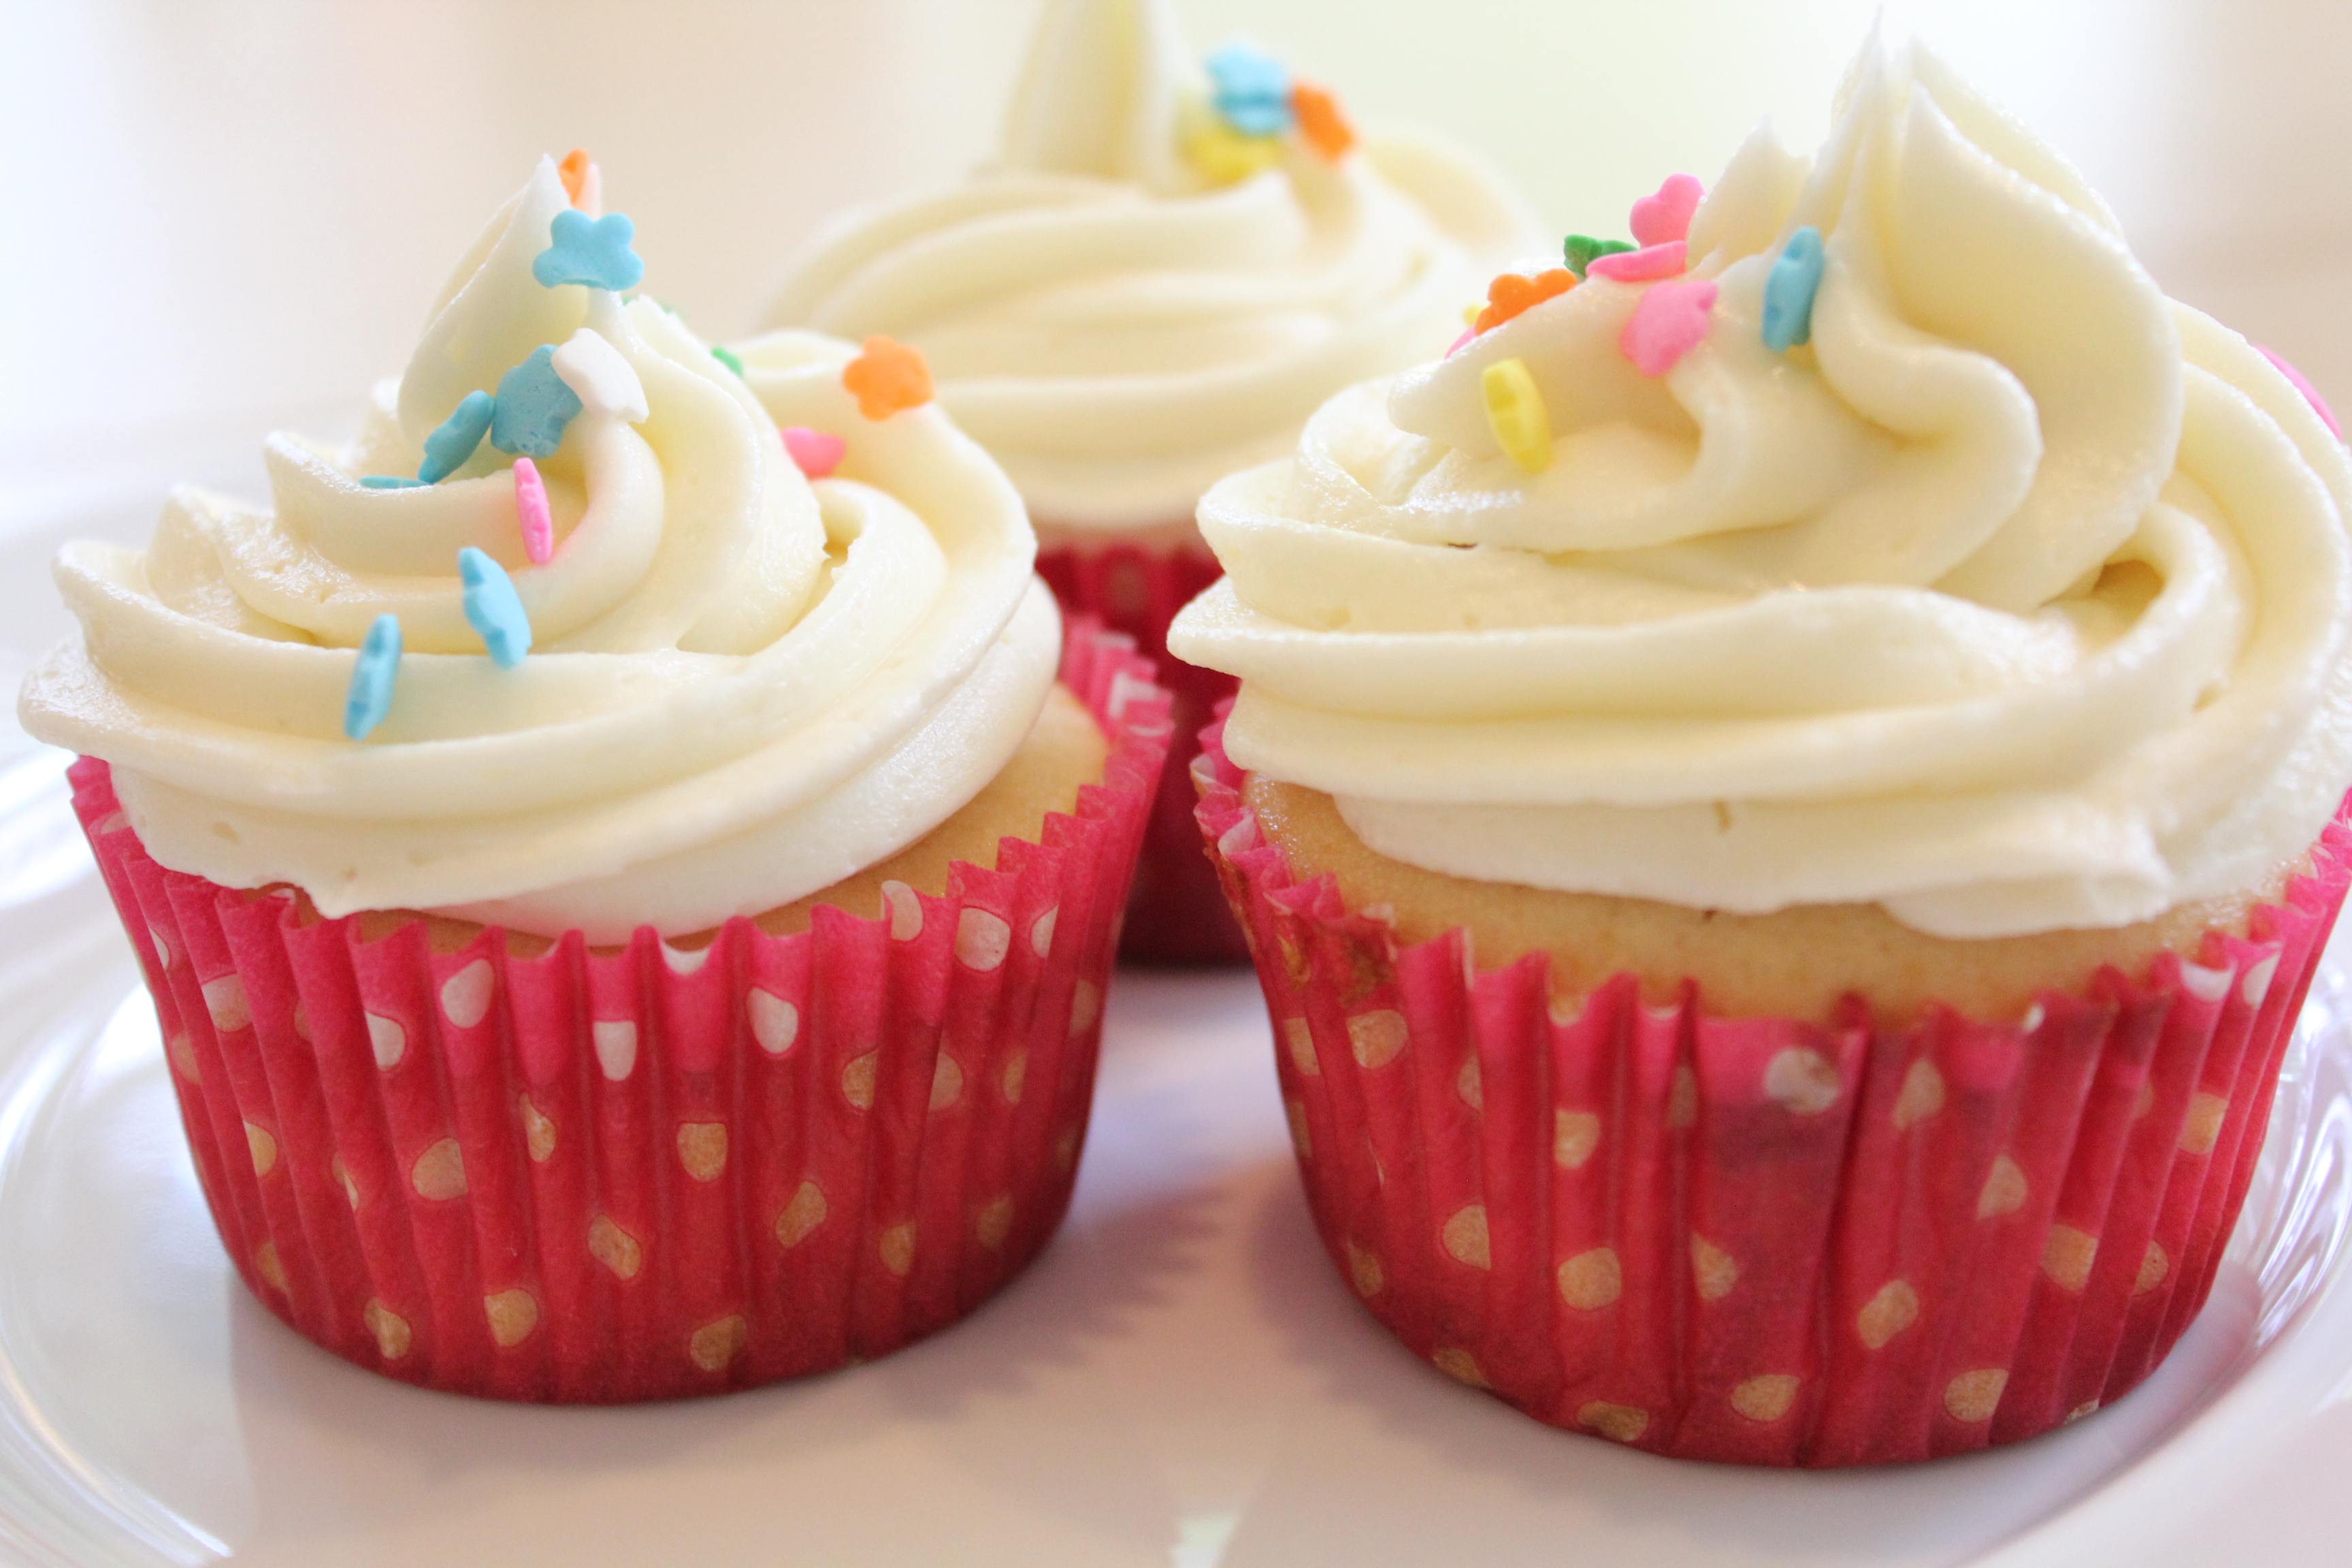 Different Cake Icing Recipes: Simple Vanilla Frosting For Cupcakes • Hip Foodie Mom